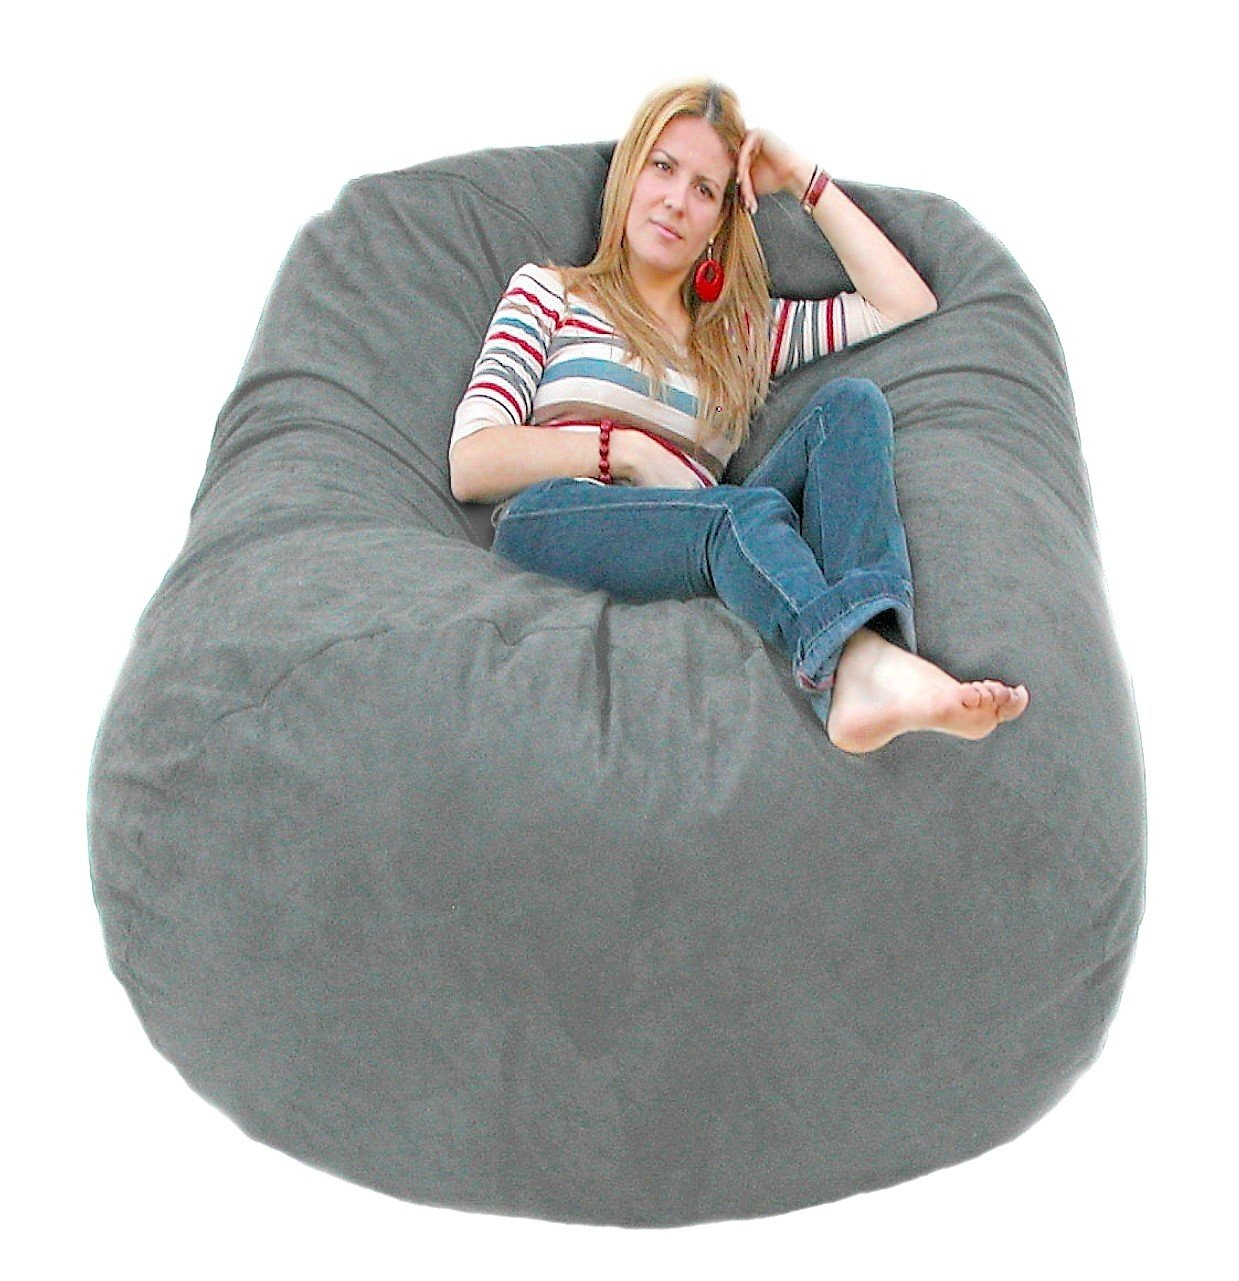 Giant bean bag chairs for adults - Amazon Com Cozy Sack 6 Feet Bean Bag Chair Large Grey Kitchen Dining